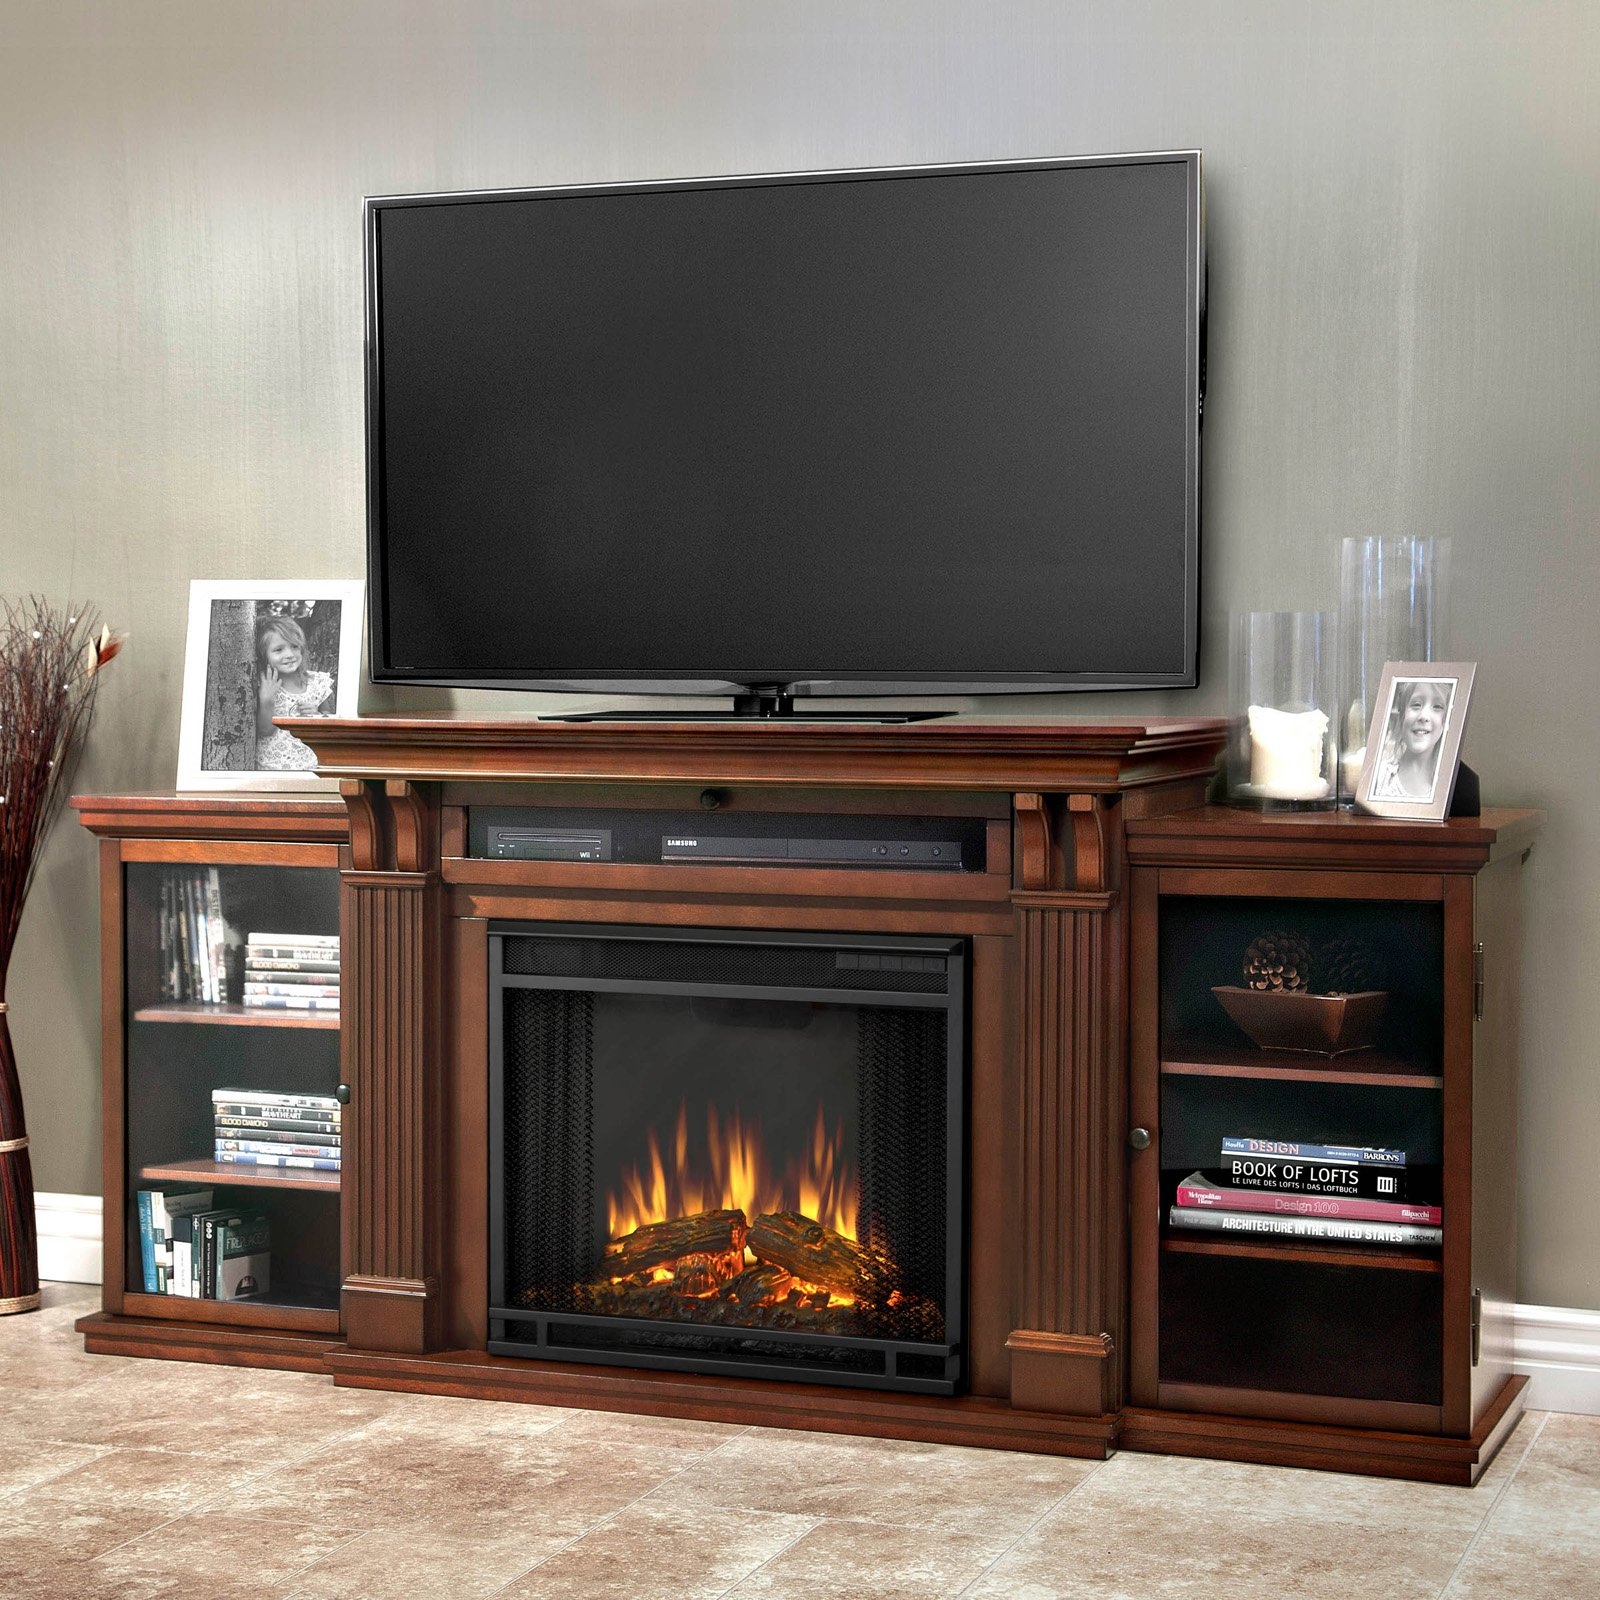 Free Shipping. Buy Real Flame Calie Entertainment Center Electric Fireplace - Dark Espresso at Walmart.com